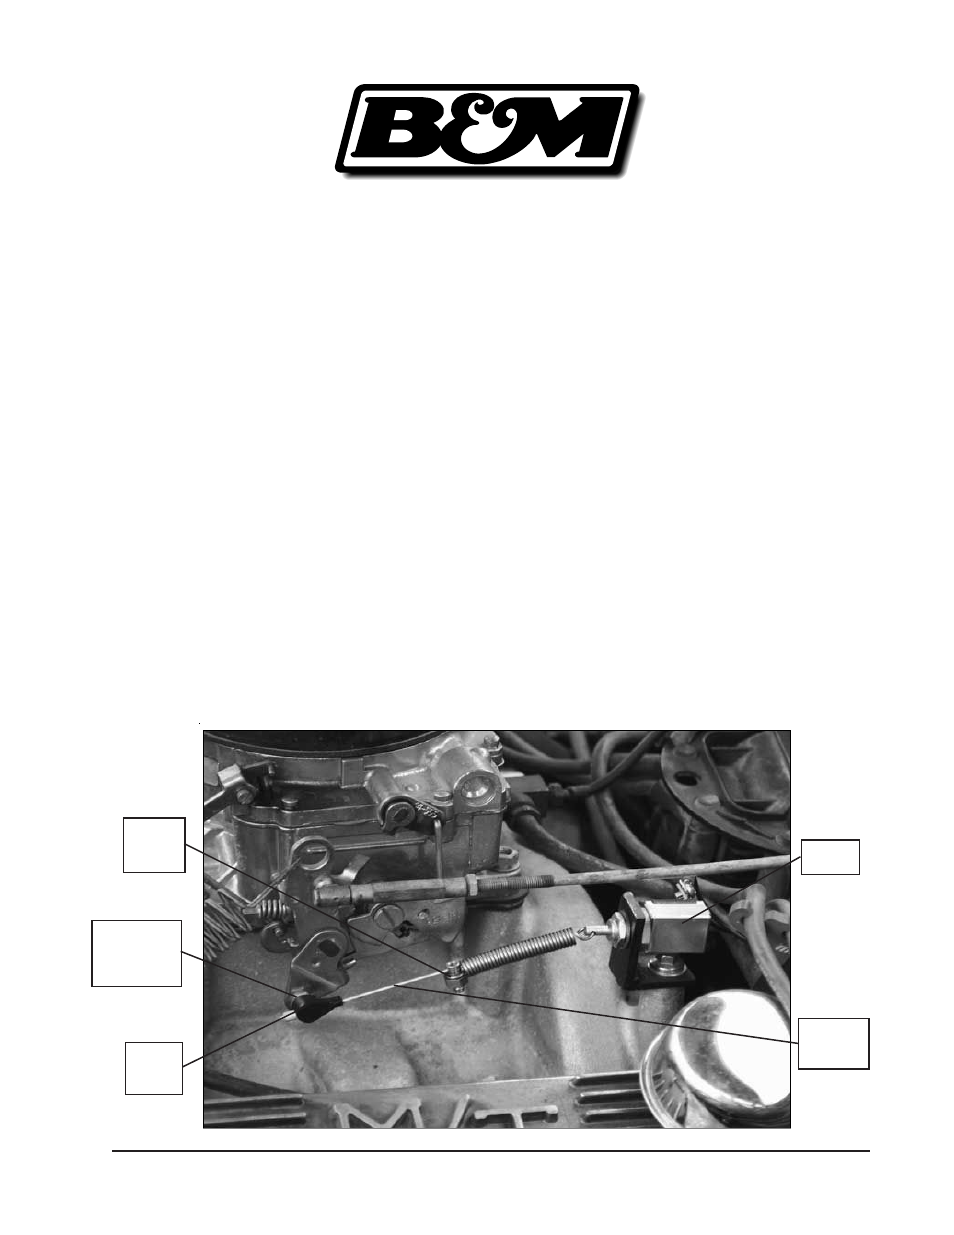 B&M 20297 KICKDOWN SWITCH KIT User Manual | 1 page